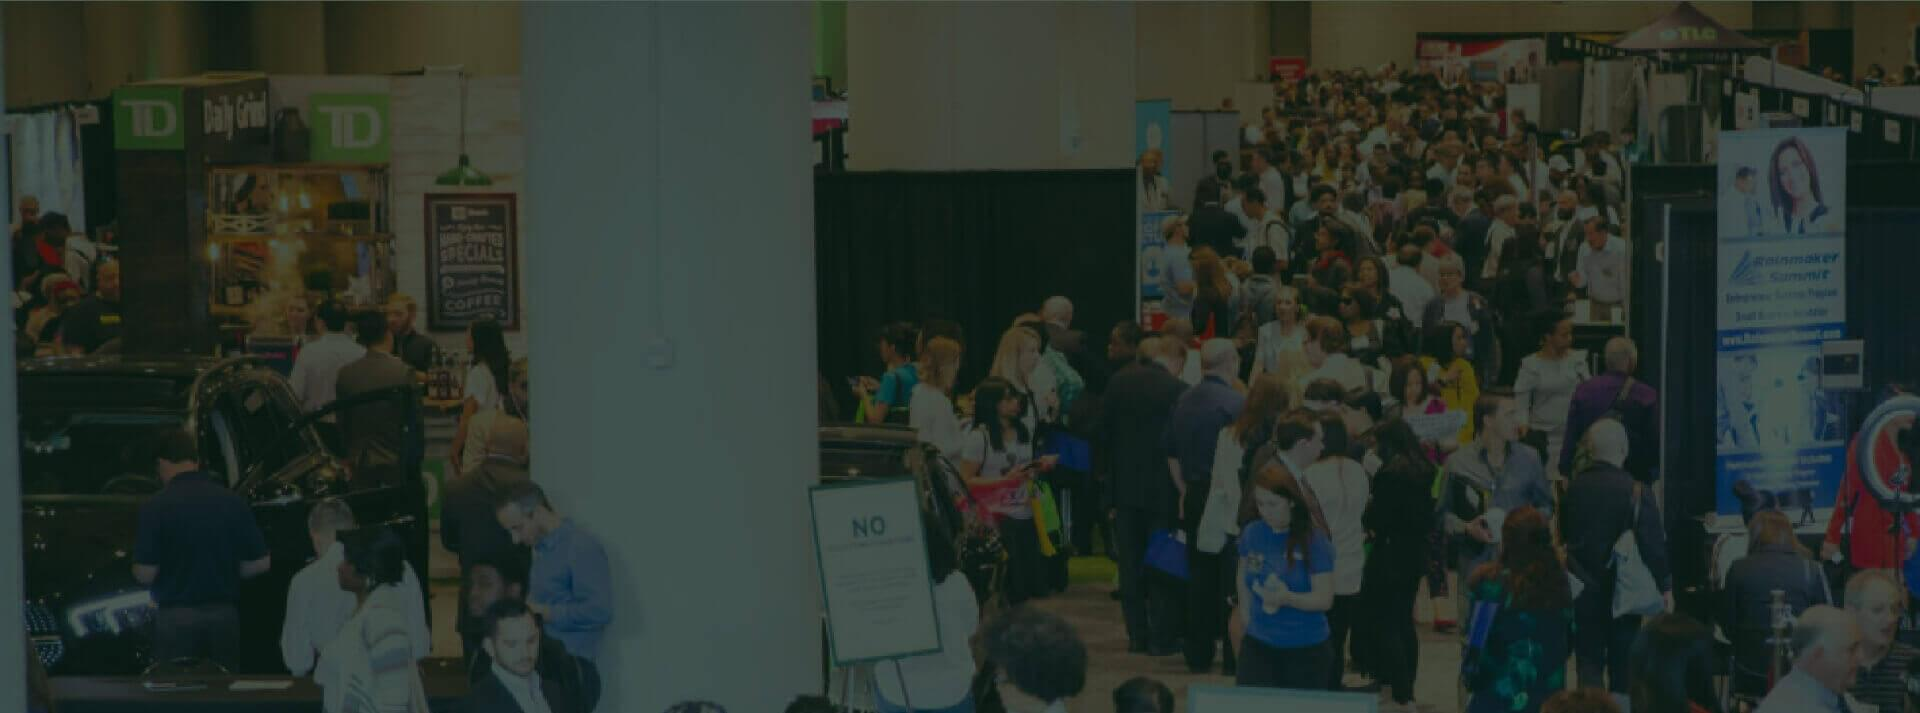 BUILD A CAREER AT SMALL BUSINESS EXPO